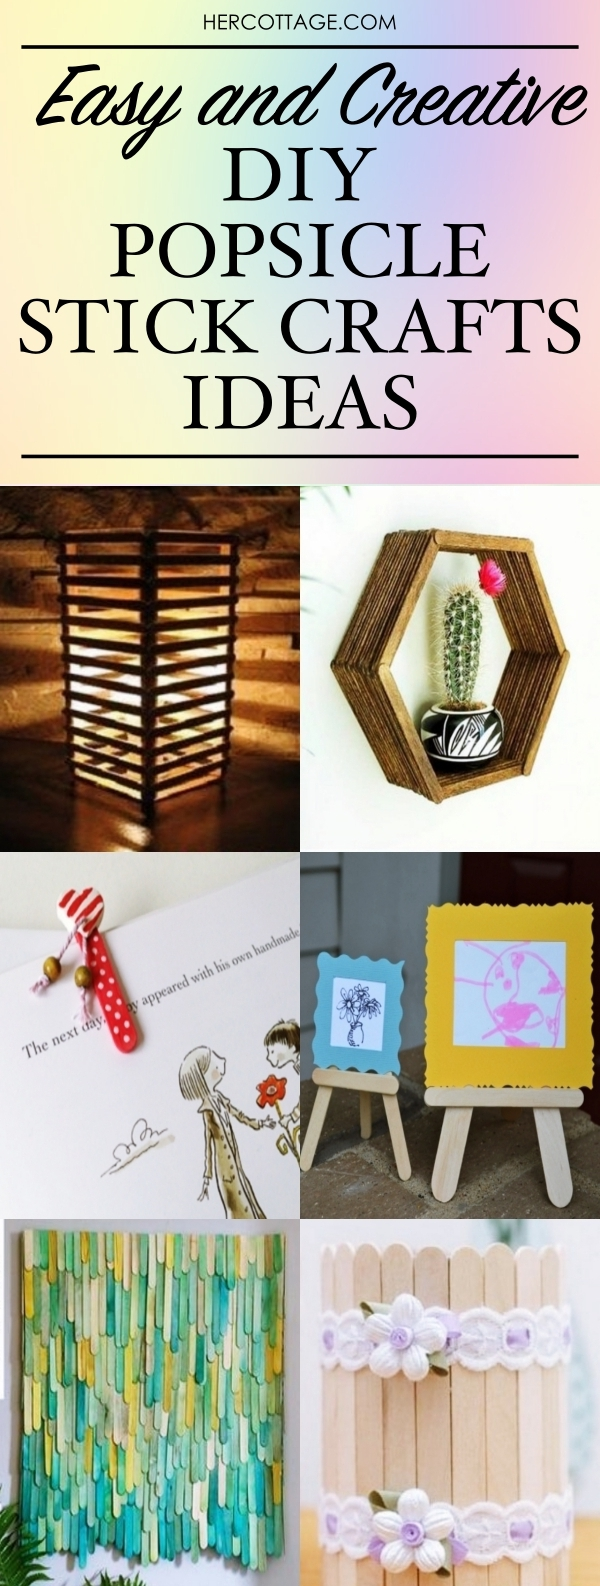 45 Easy And Creative Diy Popsicle Stick Crafts Ideas Hercottage